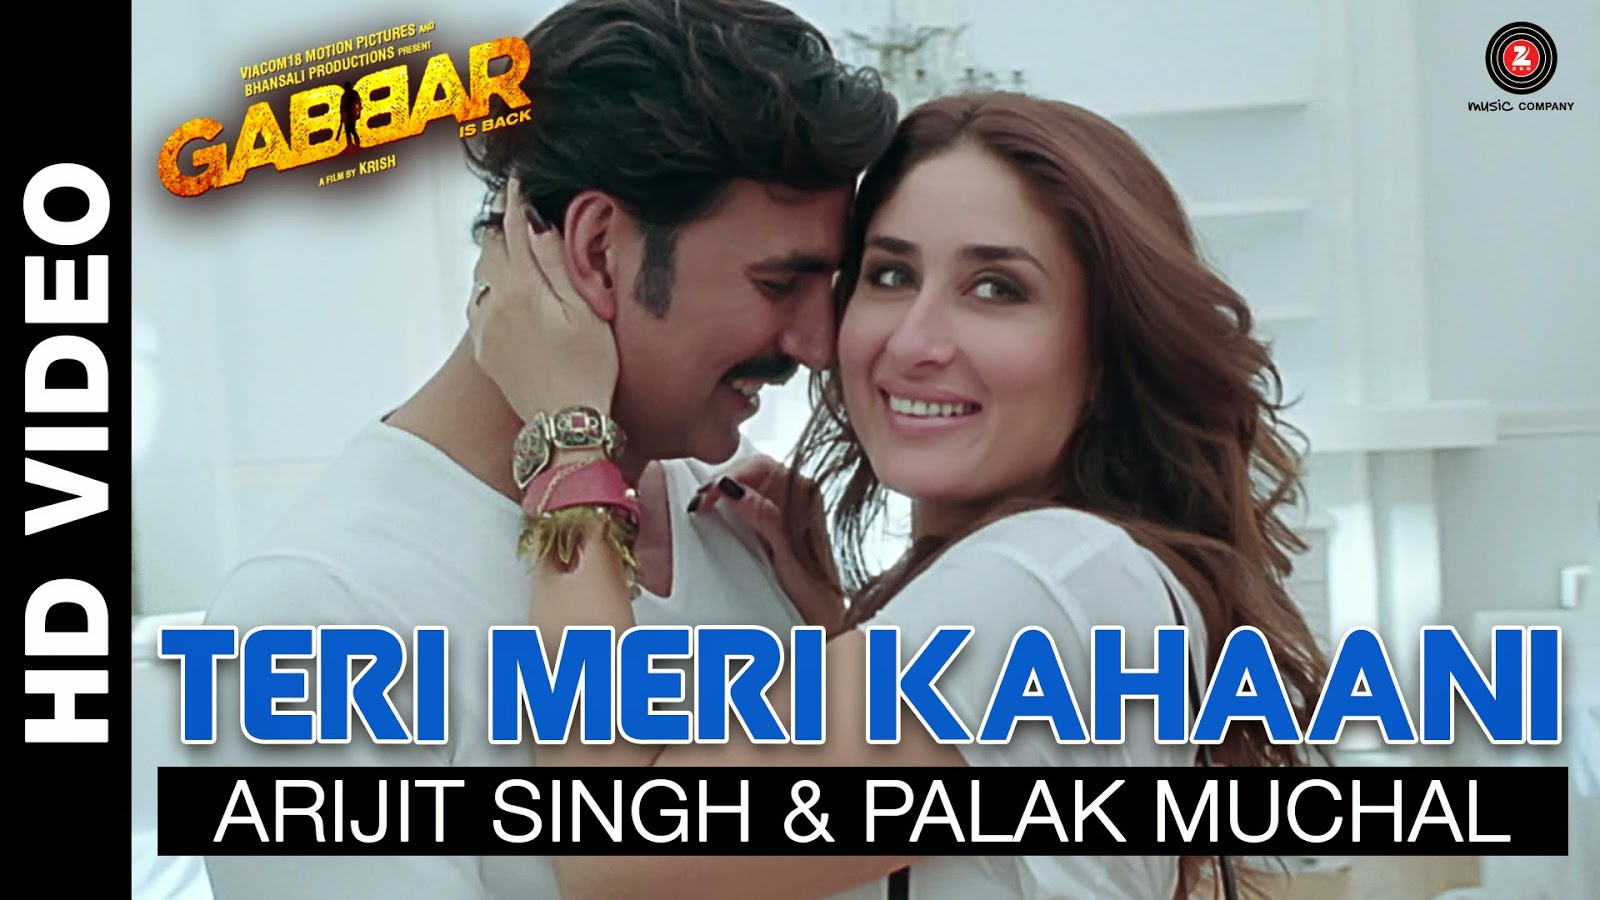 teri-meri-kahaani-gabbar-is-back-mp3-song-download-lyrics-hd-video-akshay-kumar-kareena-kapoor